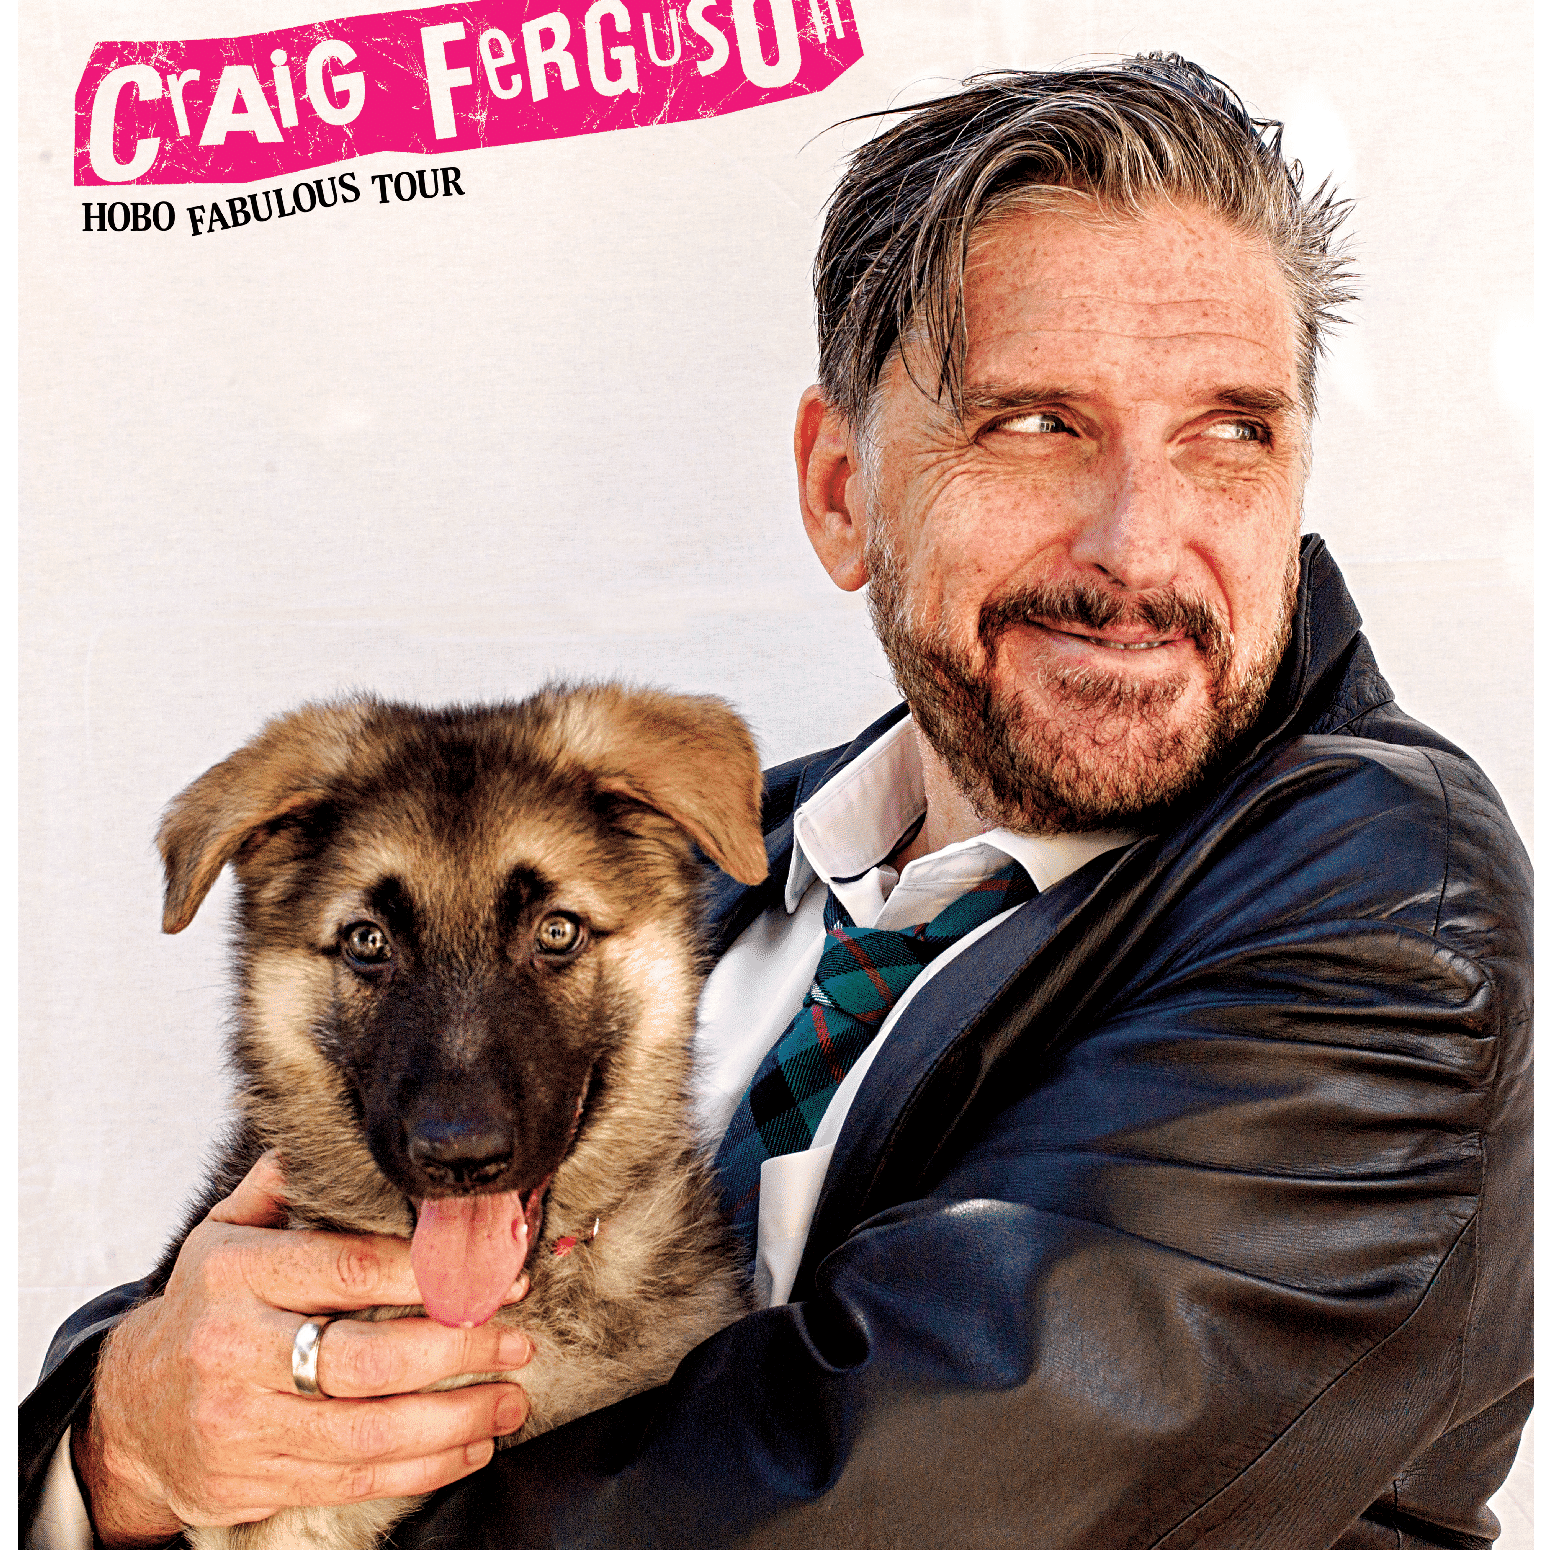 Craig Ferguson leaves politics at the door: Comedian coming to Morristown's Mayo PAC